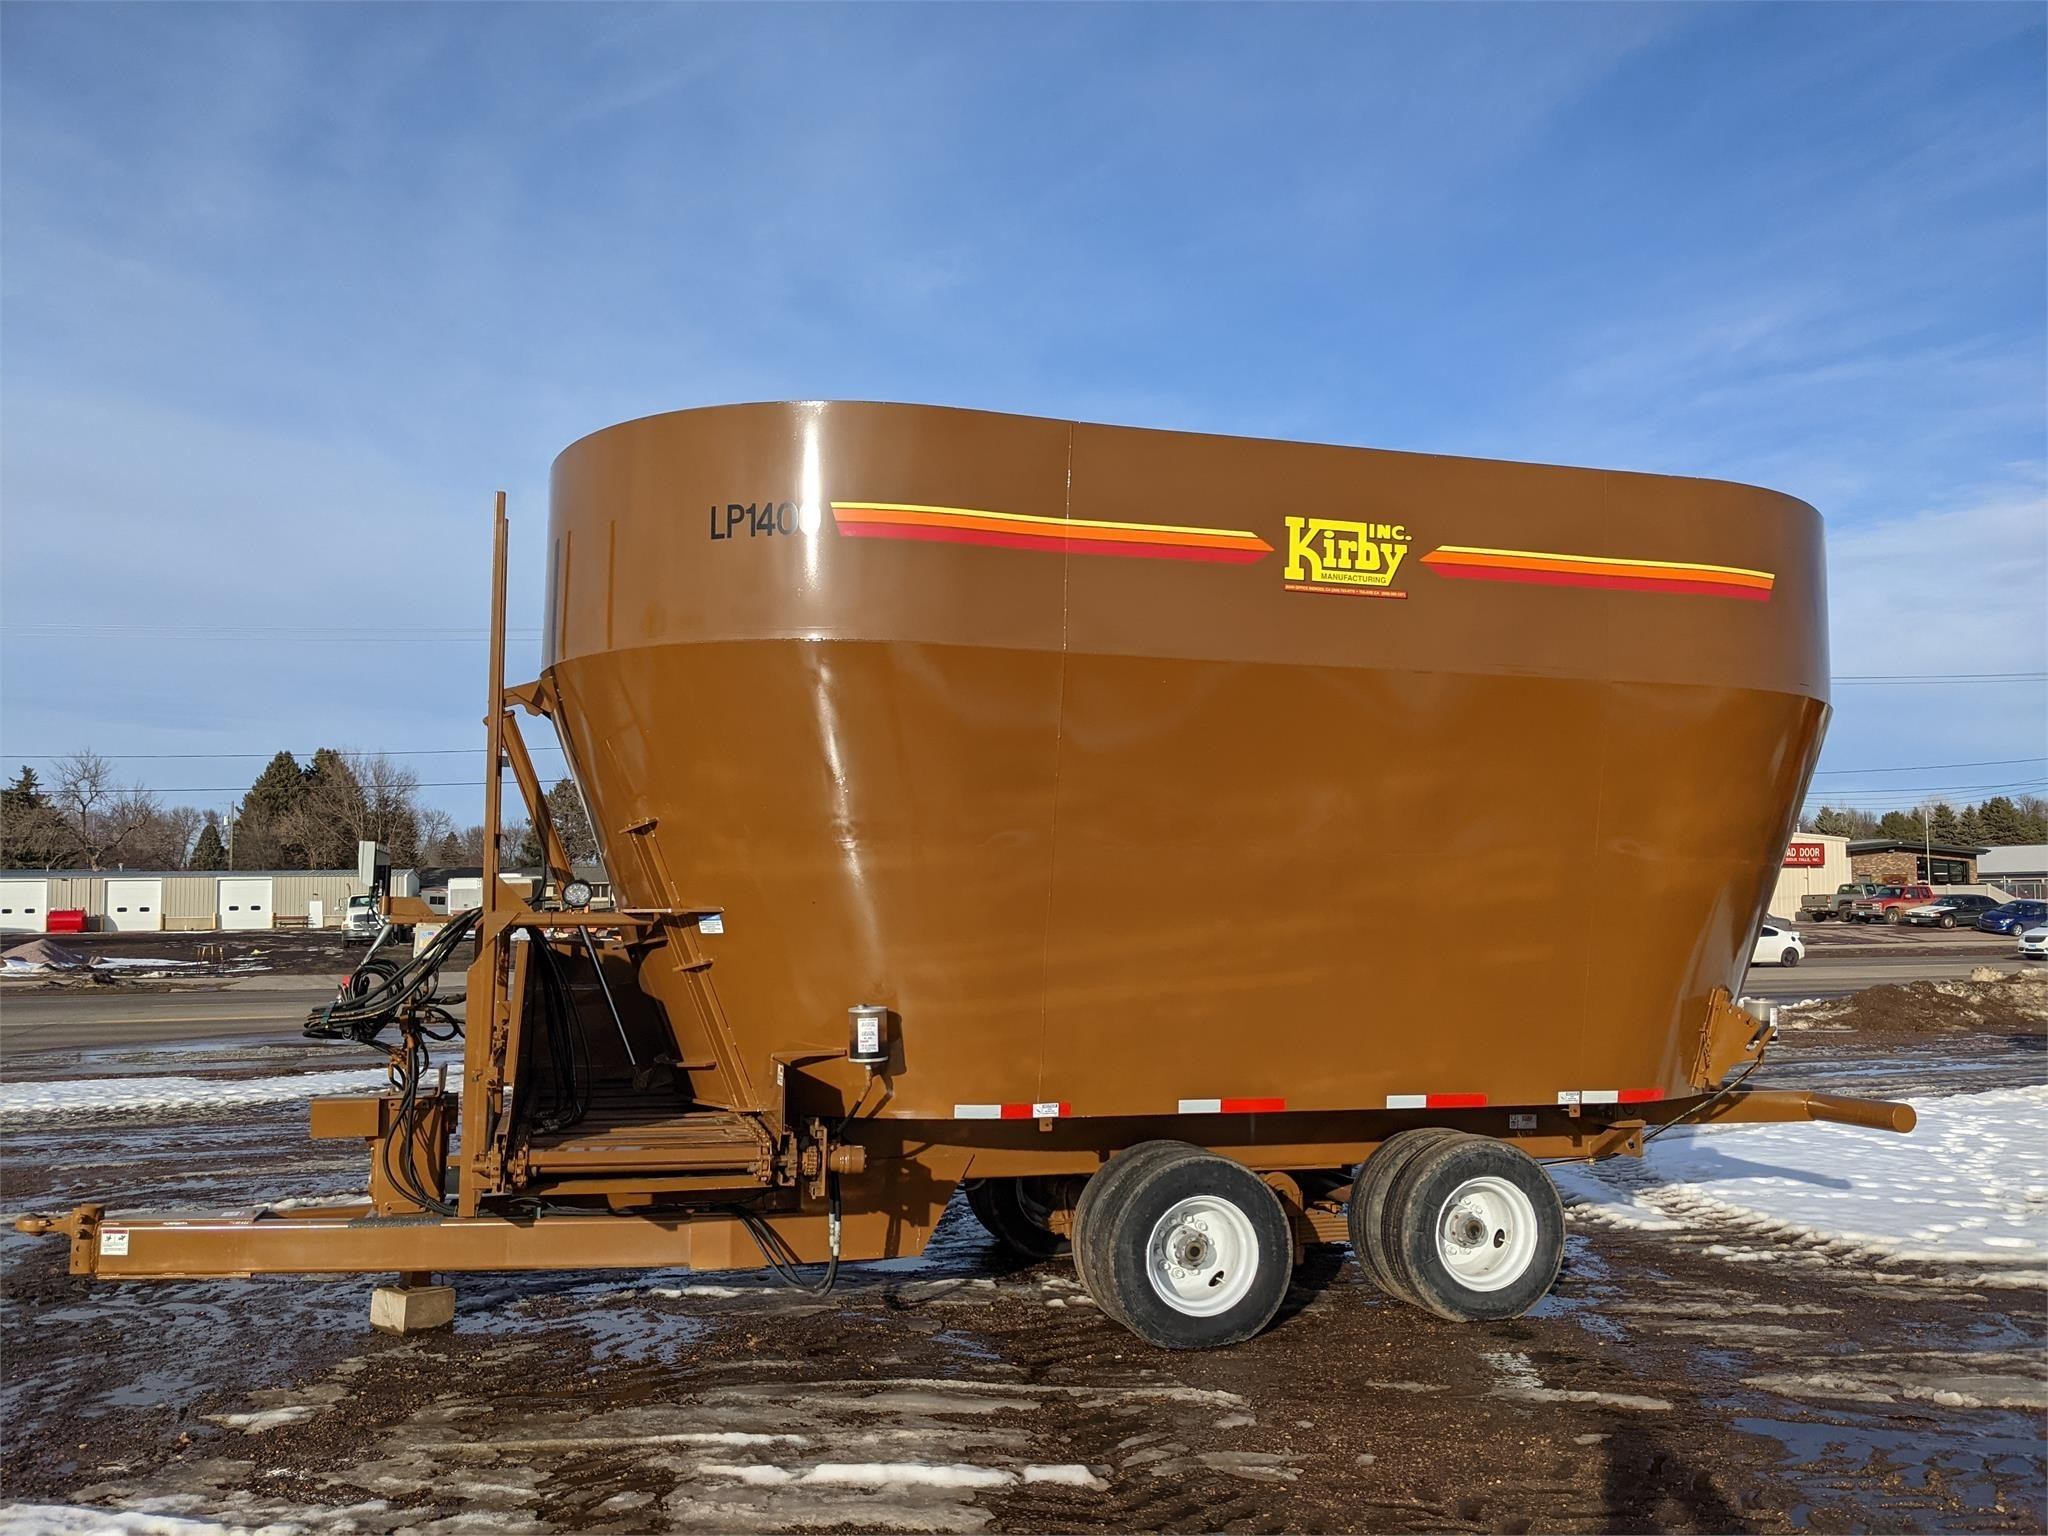 2020 Kirby Manufacturing LP1400 Grinders and Mixer